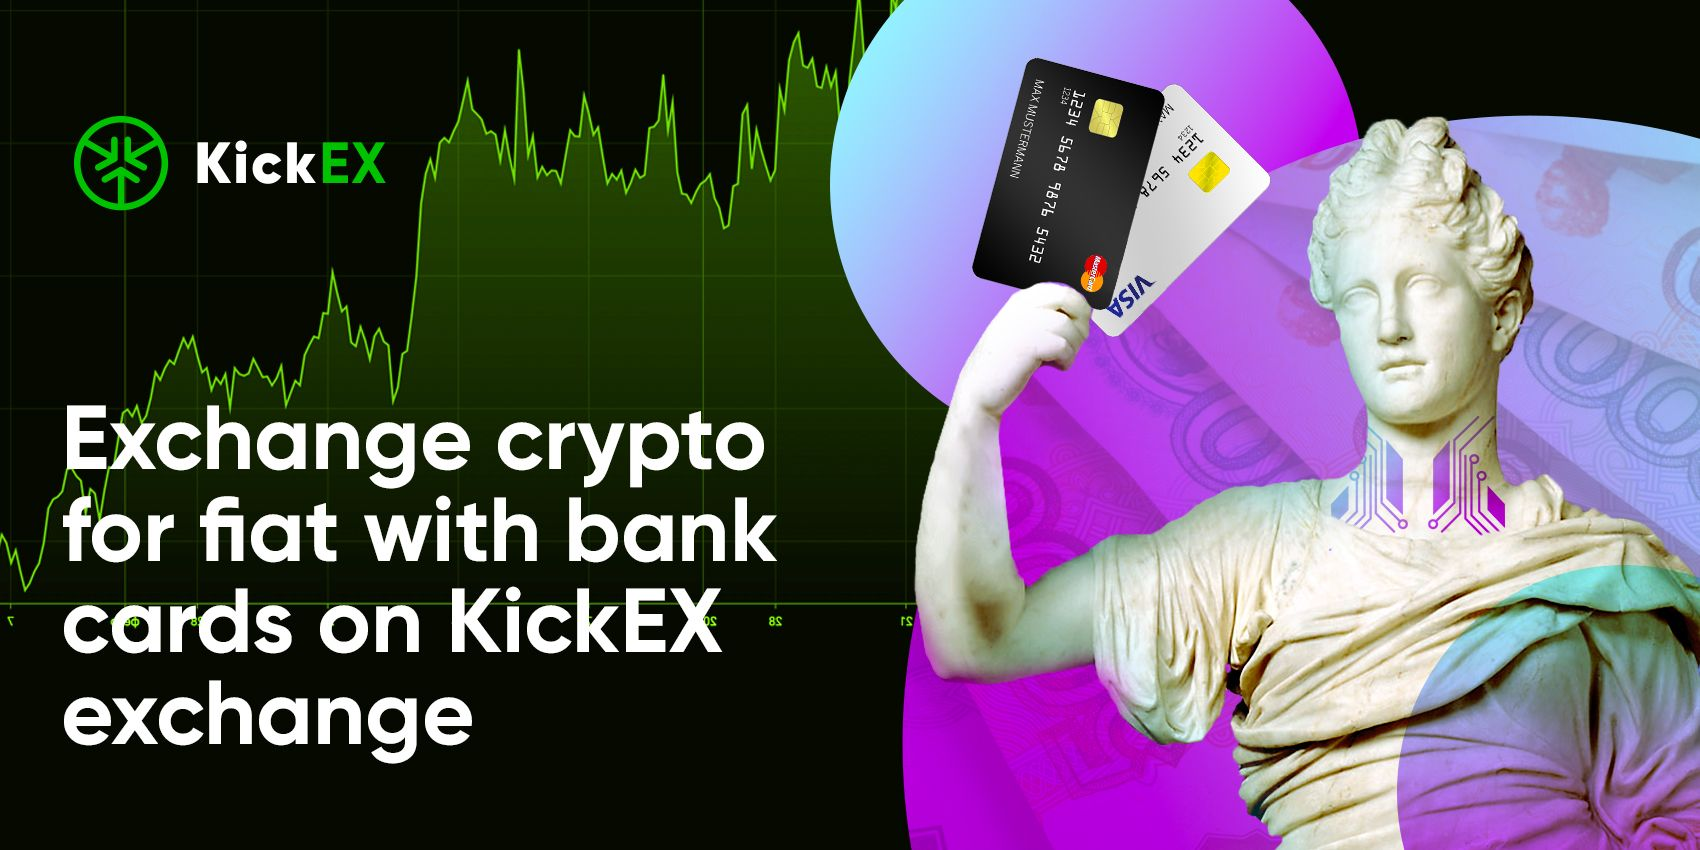 /you-can-now-buy-cryptocurrencies-on-kickex-with-bank-cards-zdz3w6s feature image